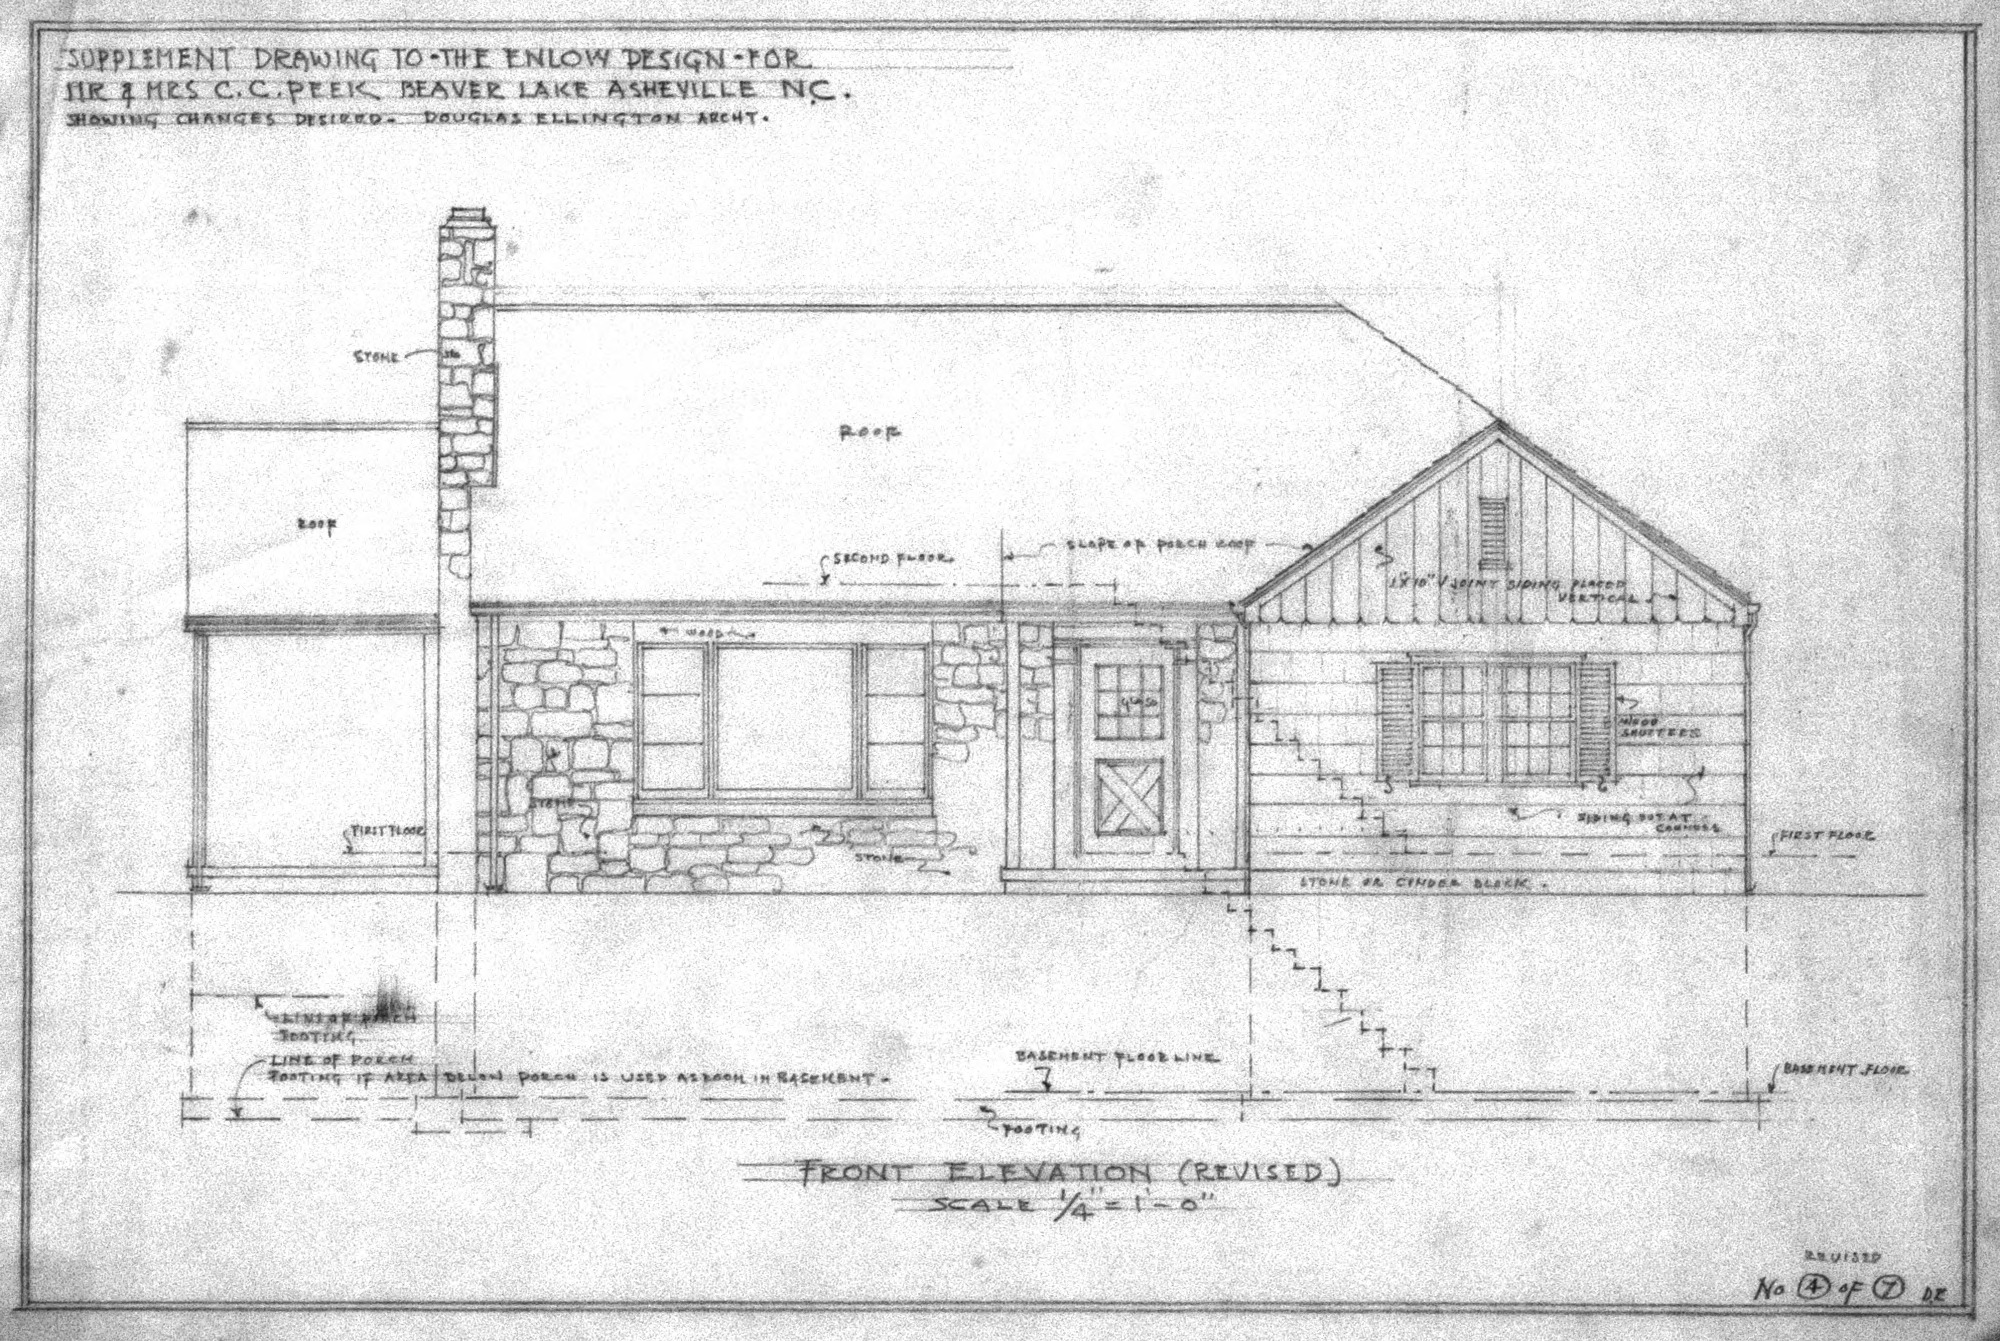 Front Elevation Drawing Of House : Supplement drawing to enlow design revised front